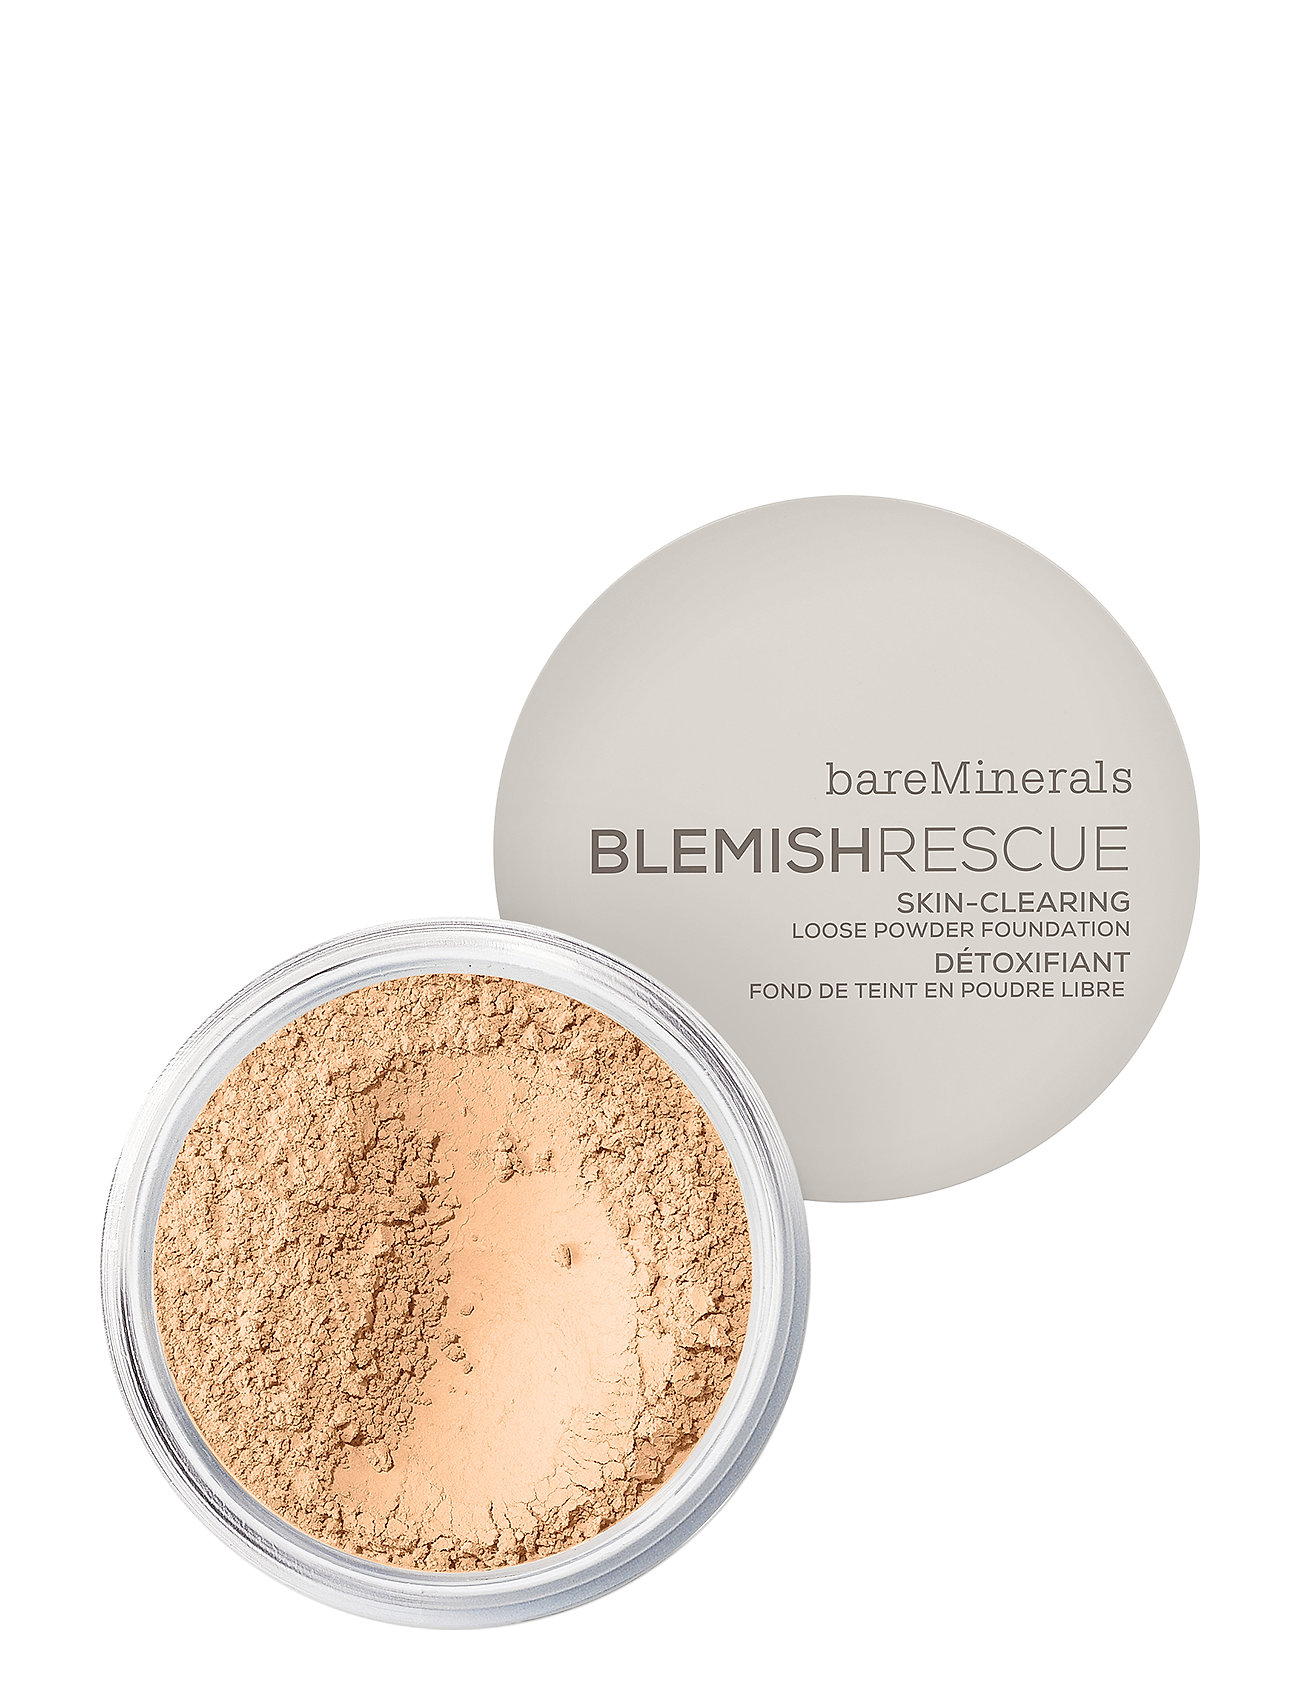 Image of Blemish Rescue Skin-Clearing Loose Powder Foundation Foundation Makeup BareMinerals (3393714561)